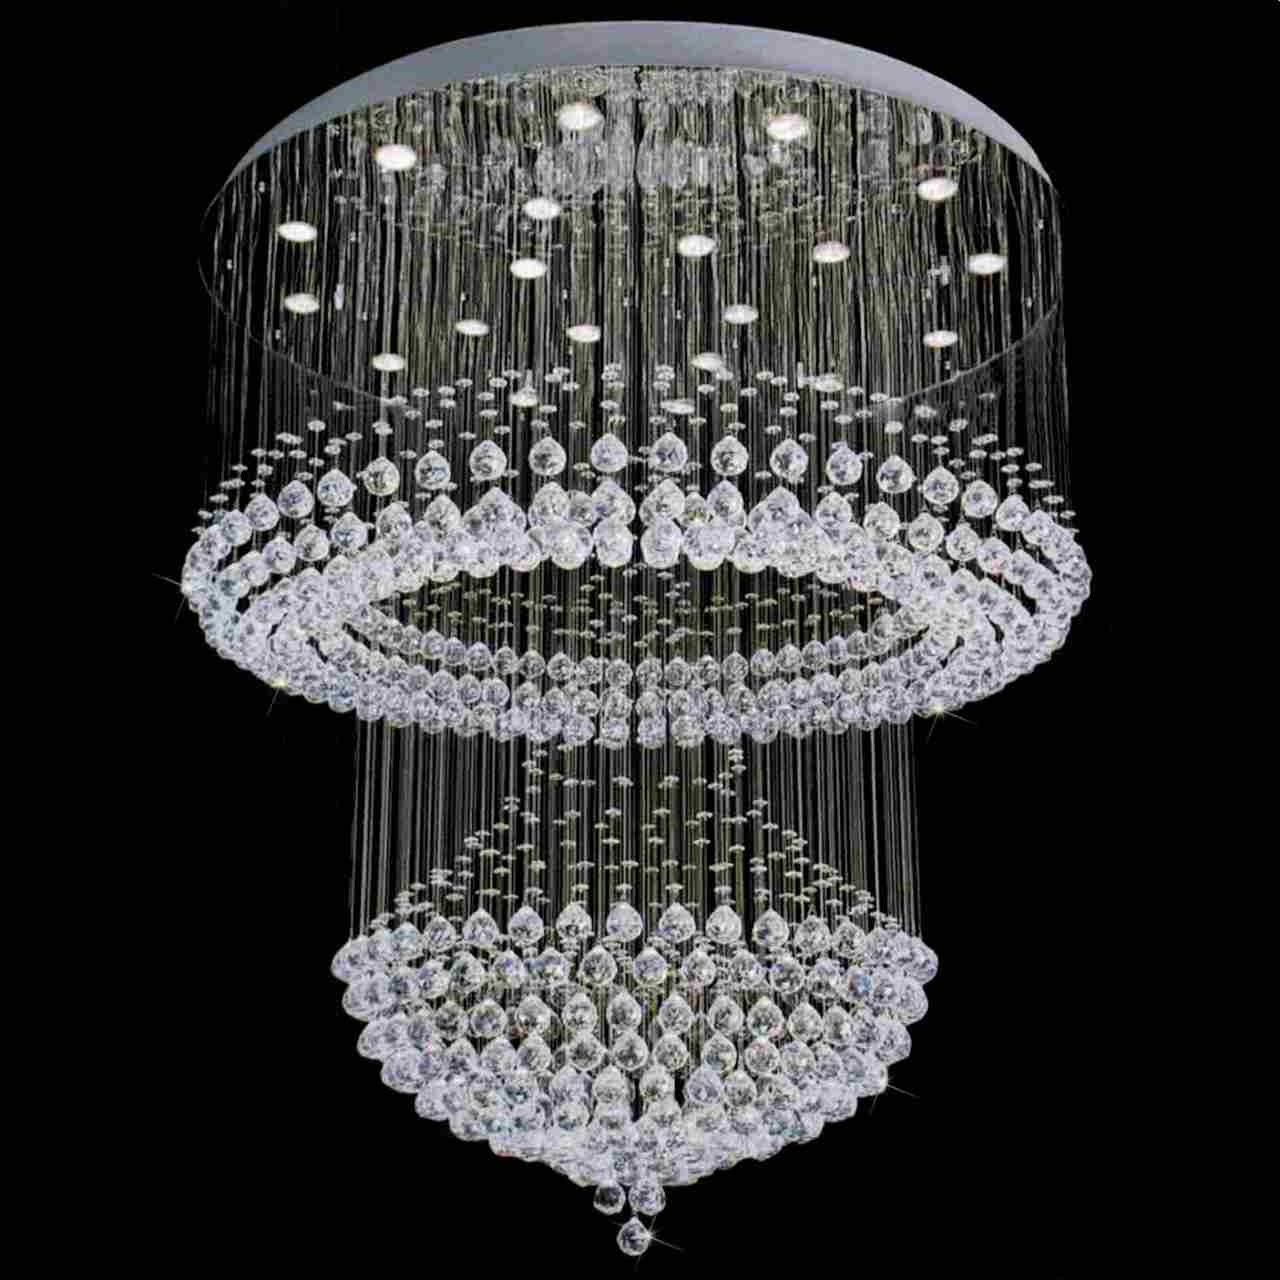 Modern Crystal Chandeliers Intended For Crystal Chandeliers (Image 12 of 15)